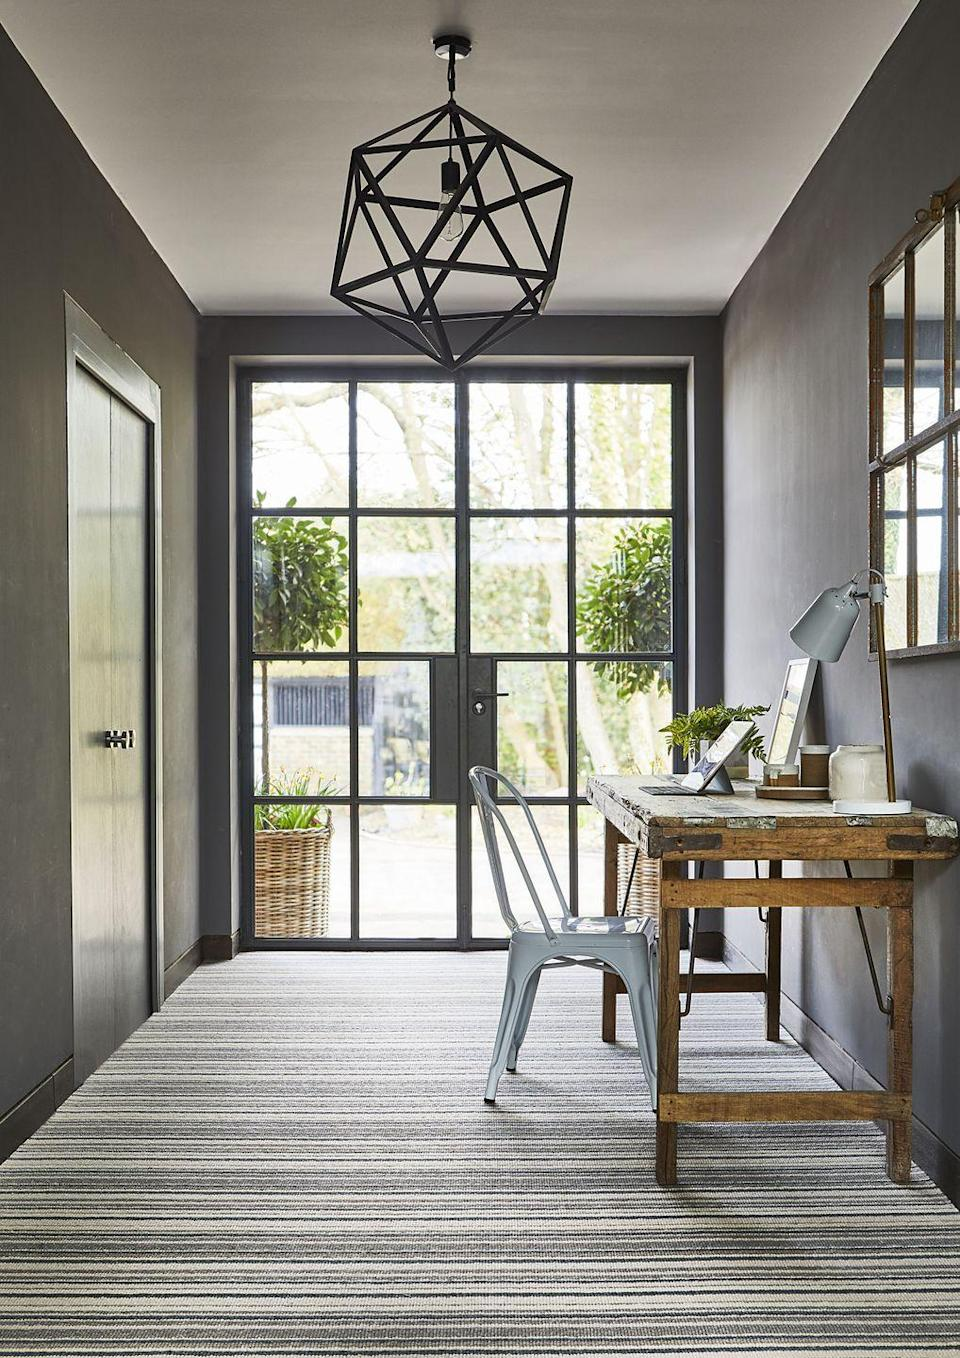 """<p>Patterned carpets are a very efficient way to alter perspectives in your home, adding the allusion of extra depth or space. Here, a horizontal stripe is used to widen a narrow room, and create a visual tunnel towards some lovely garden views. </p><p>Pictured: <a href=""""https://www.carpetright.co.uk/carpets/residence-striped-carpet/"""" rel=""""nofollow noopener"""" target=""""_blank"""" data-ylk=""""slk:Residence Striped Carpet at Carpetright"""" class=""""link rapid-noclick-resp"""">Residence Striped Carpet at Carpetright</a></p>"""